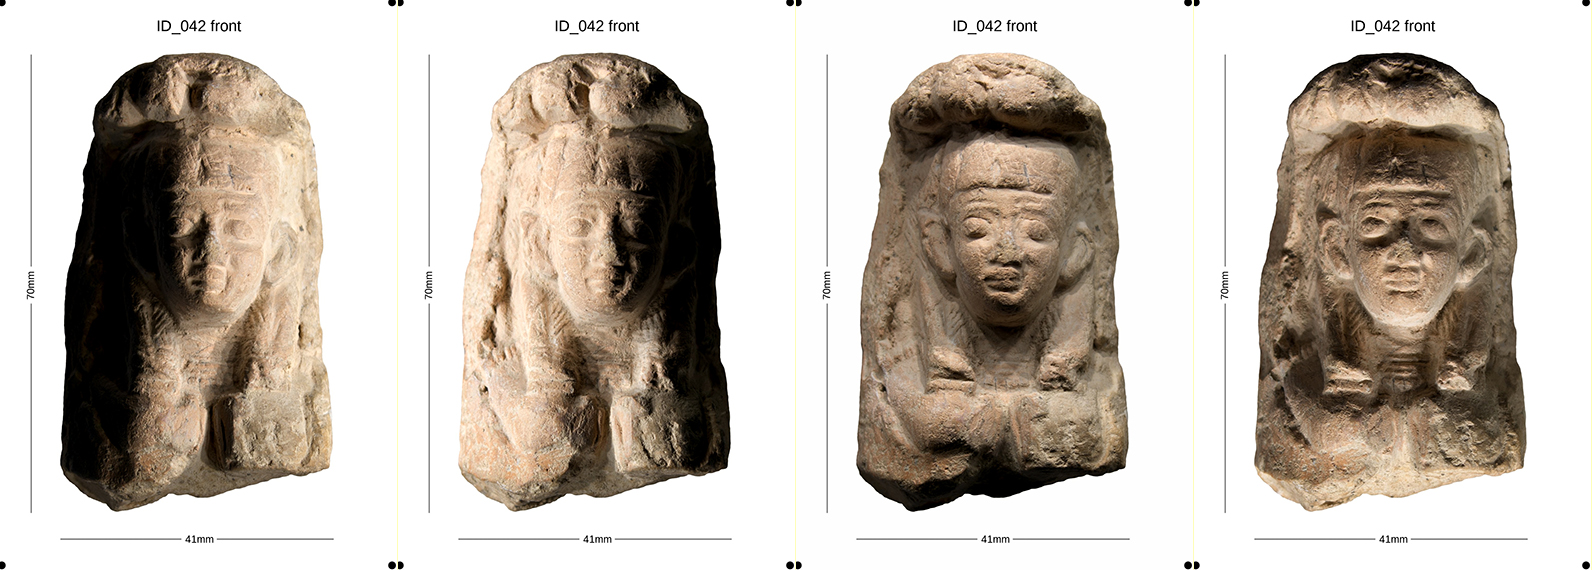 Franco-German Figurines Project FGFP Terracota Jordan Universität Würzburg Thomas Graichen Astrid Nunn Regine Hunziker-Rodewald Universite Strasbourg RTI Reflectance Transformation Imaging